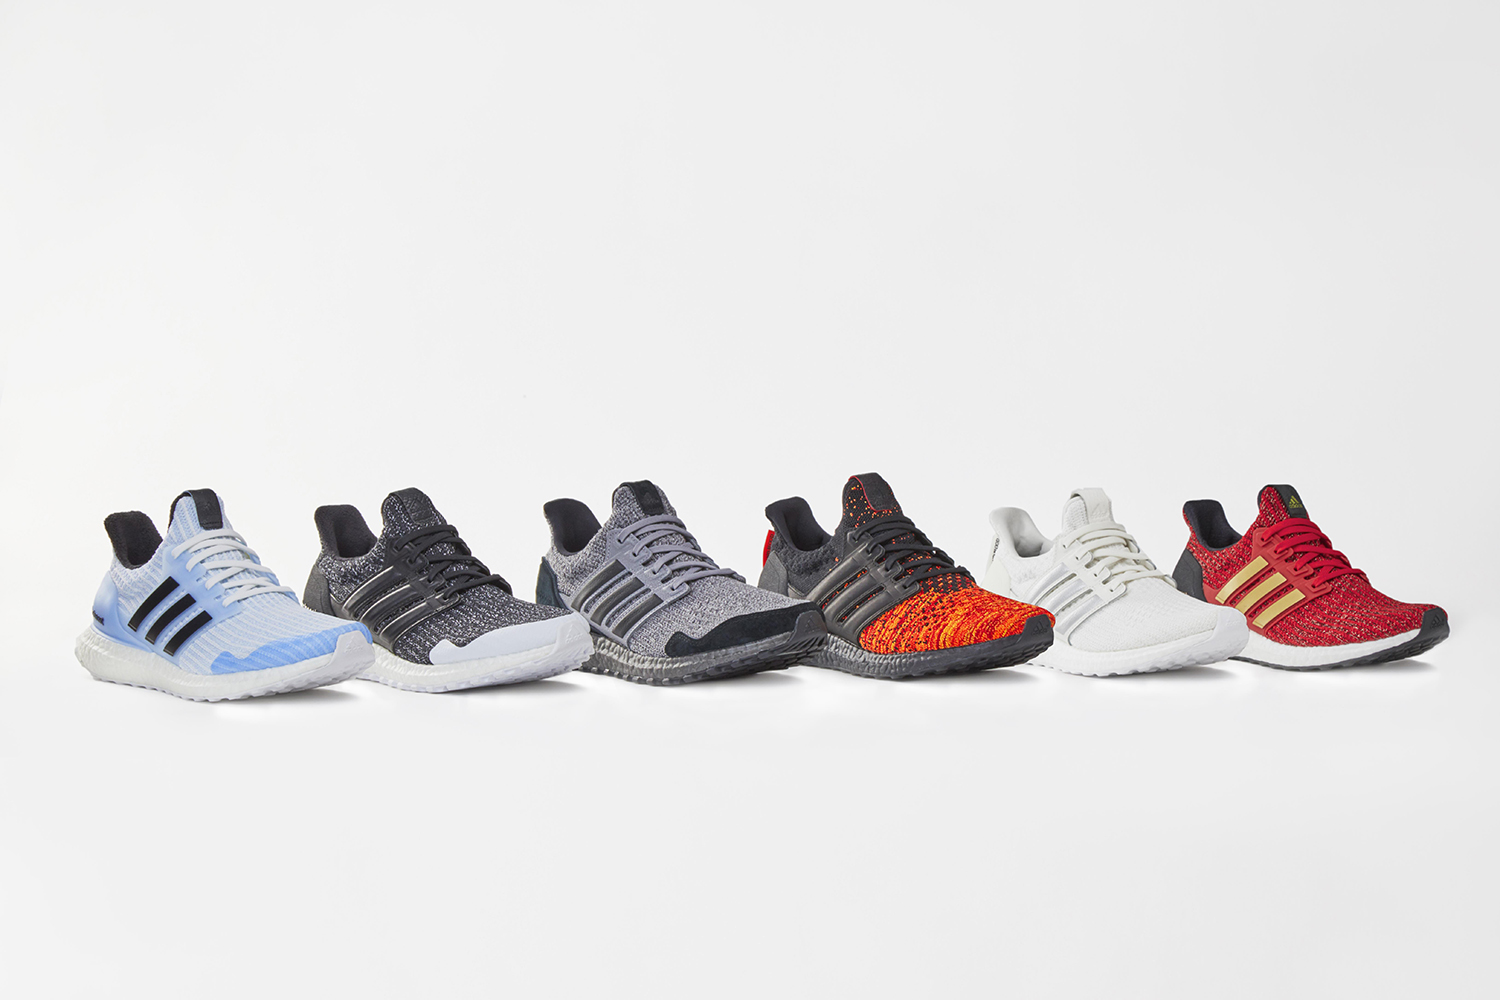 Adidas and Game of Thrones reveal official Collaboration